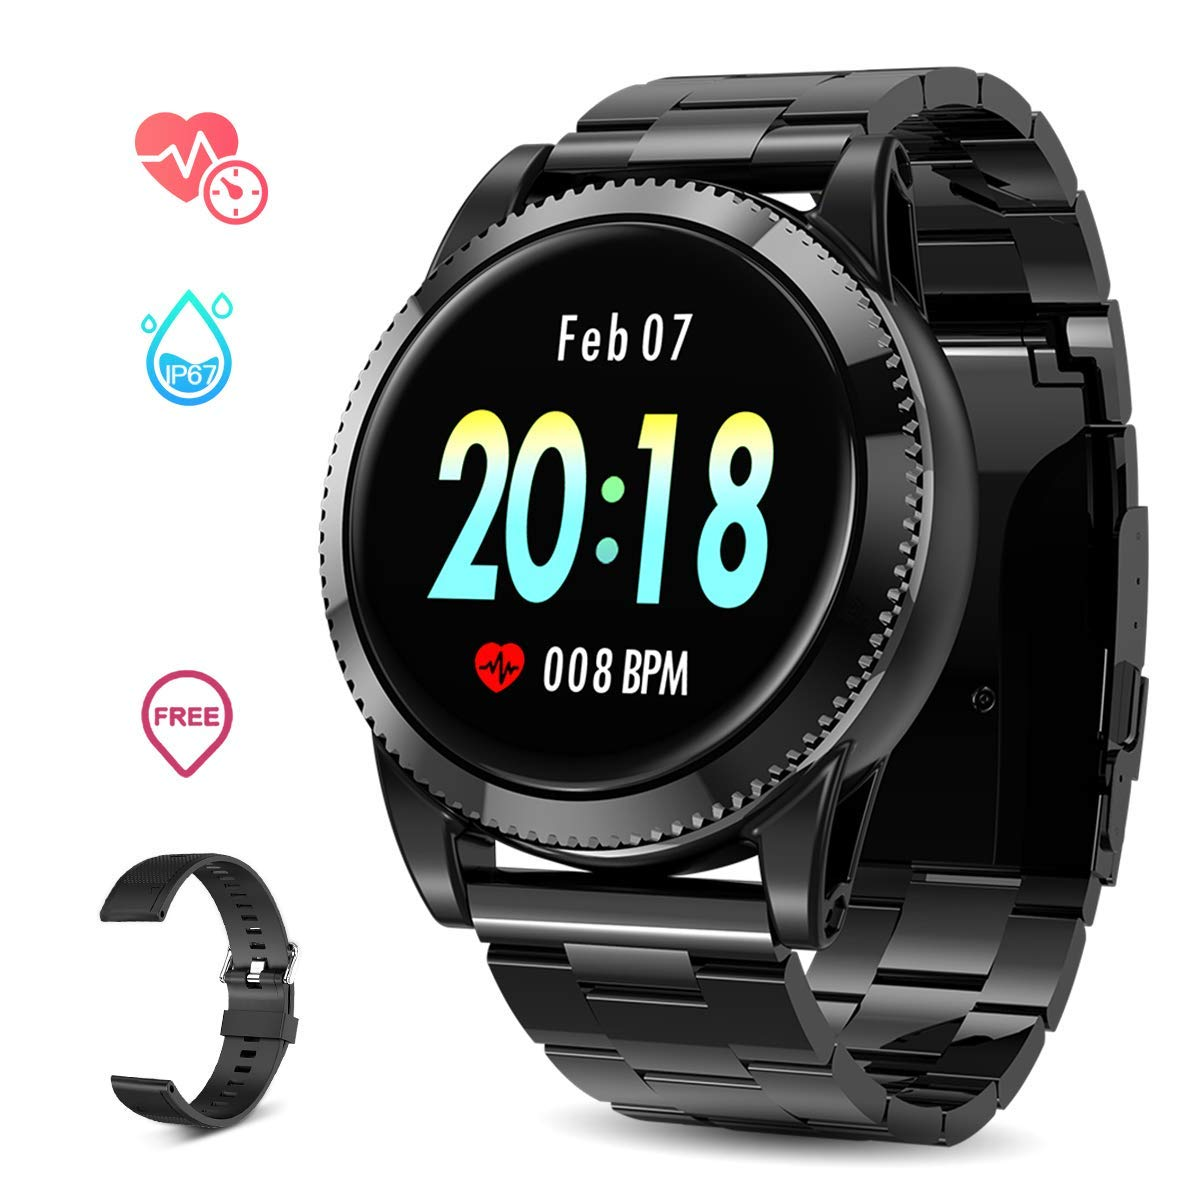 GOKOO Smart Watch for Men with All-Day Heart Rate Blood Pressure Sleep Monitor IP67Waterproof Activity Tracker Notification Camera Music Control Black by GOKOO